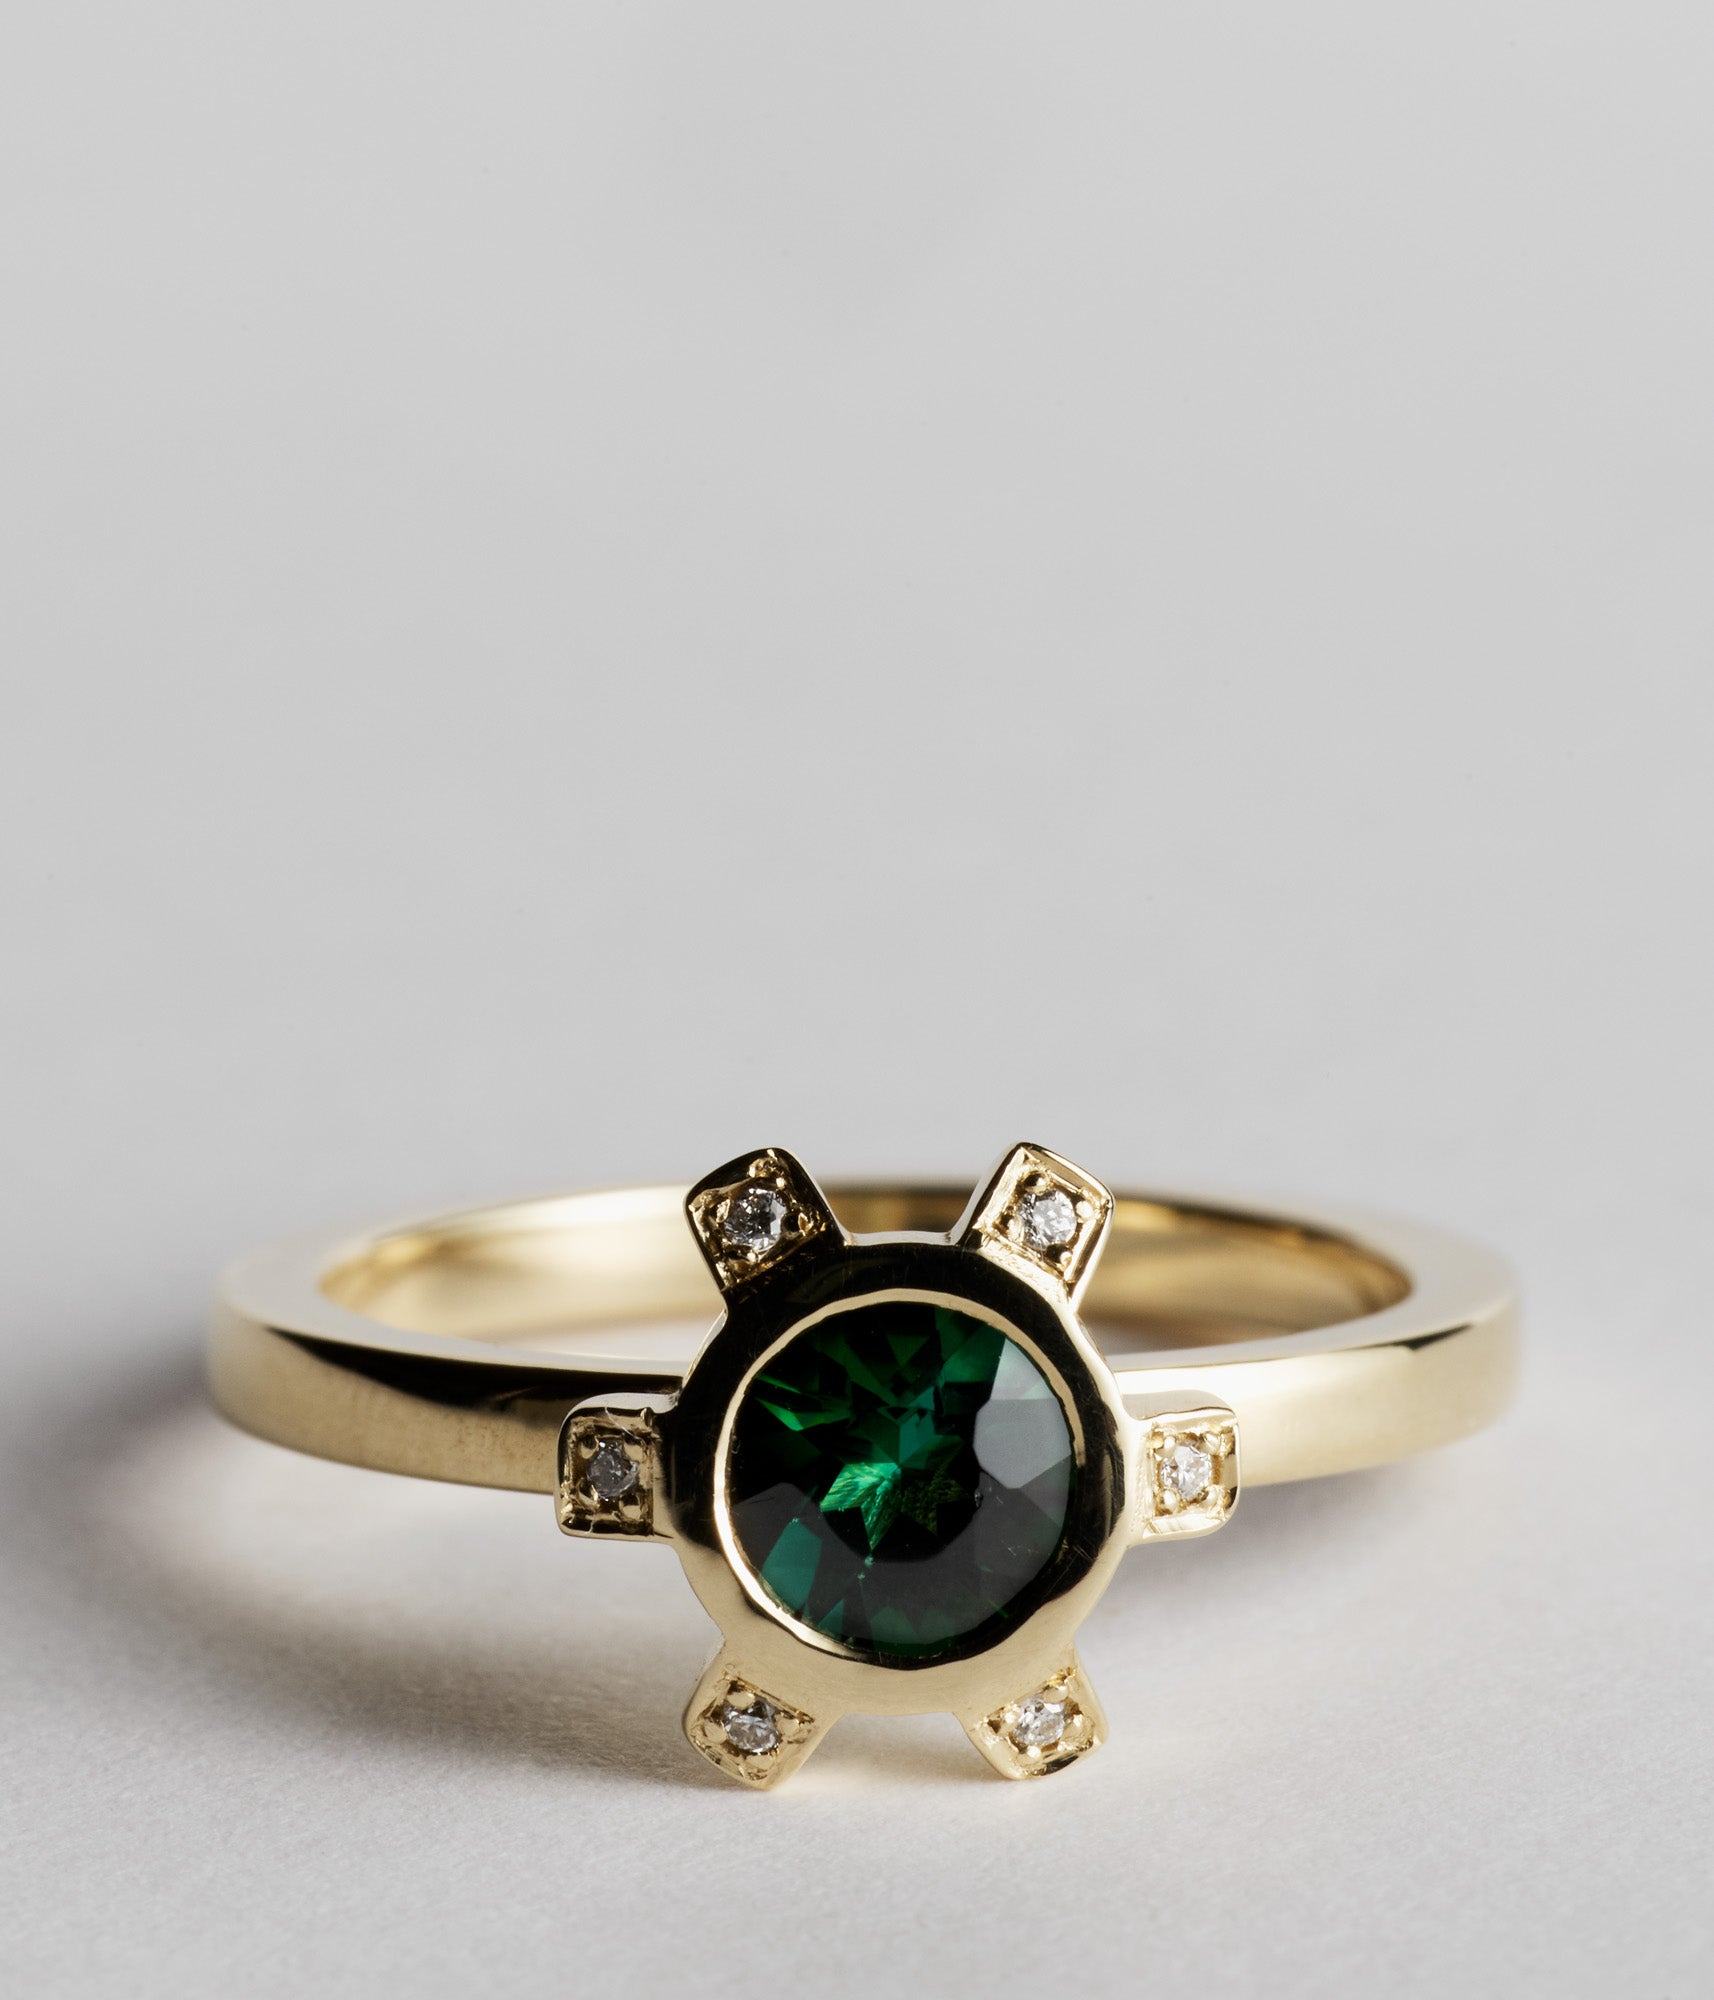 Beverley Ring - Green Tourmaline